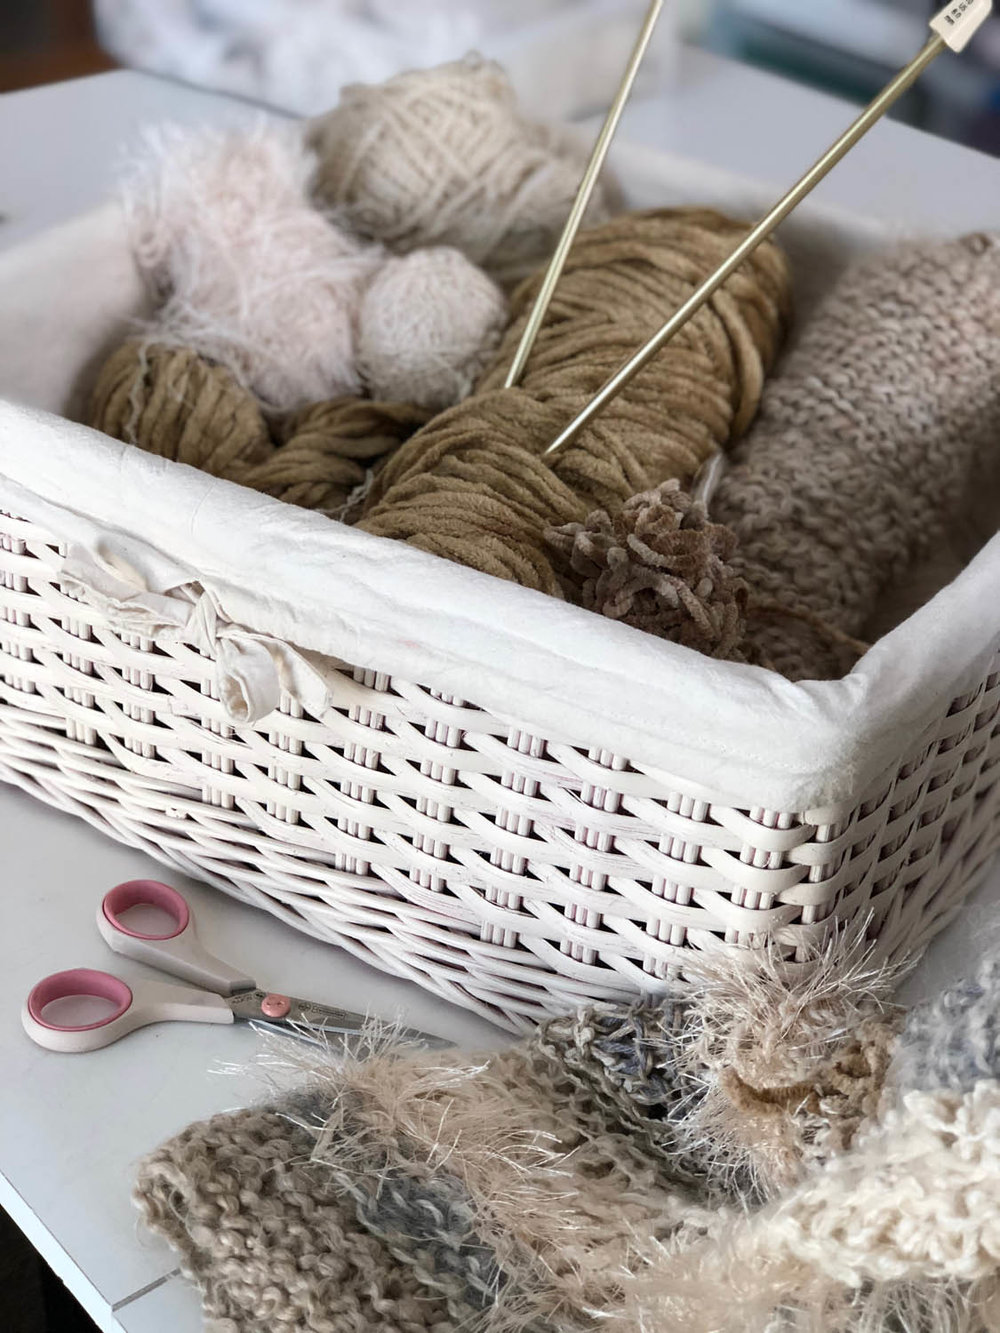 White wicker basket filled with variety of yarn balls in neutral winter whites with knitting needles